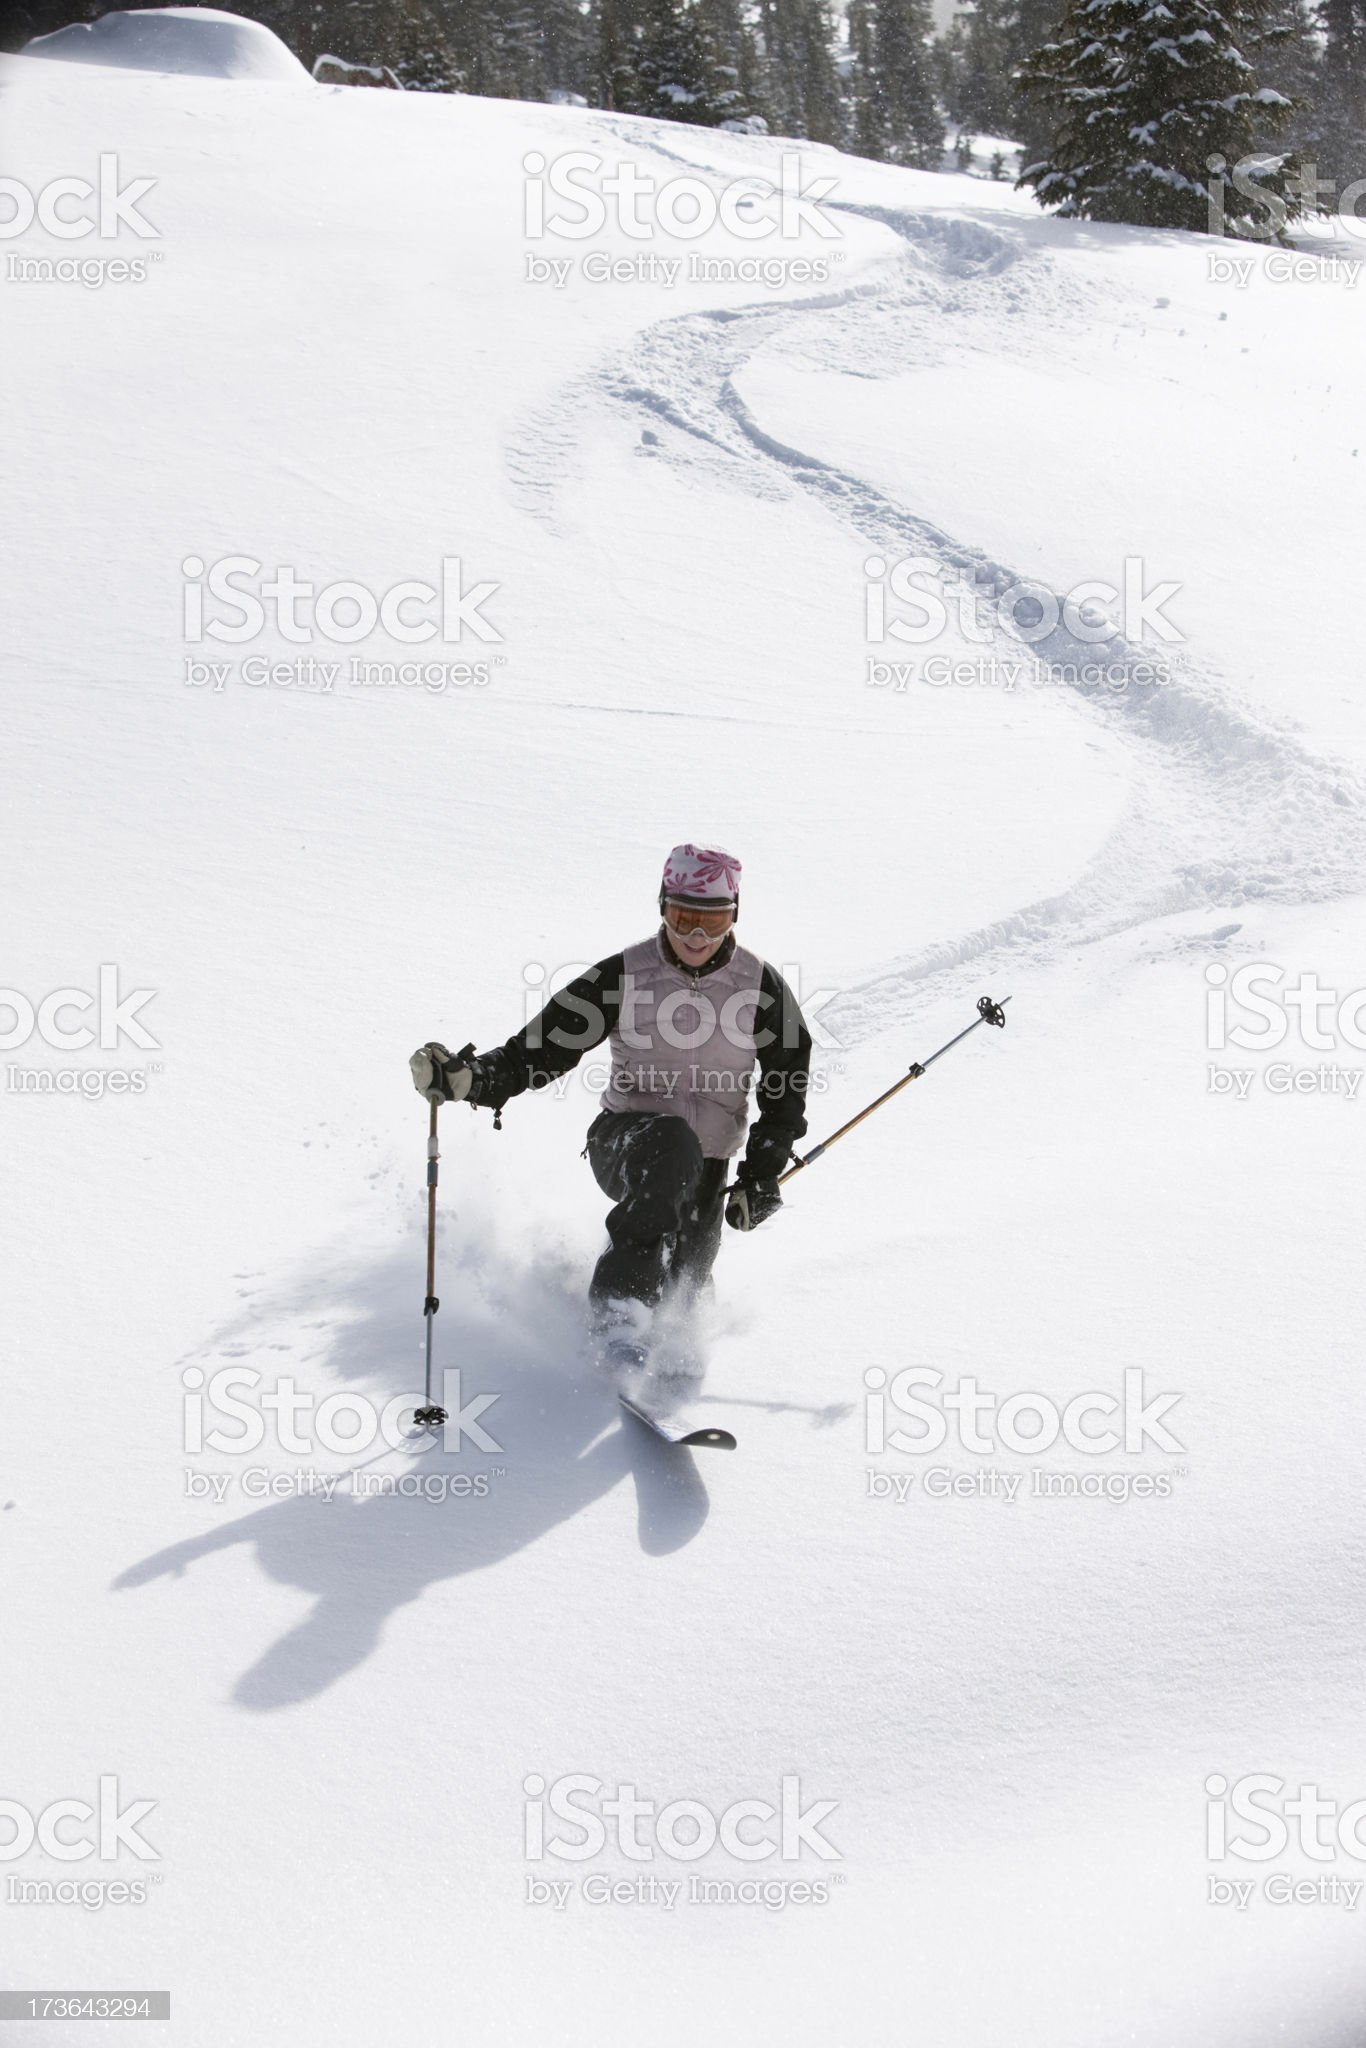 Woman skiing powder royalty-free stock photo